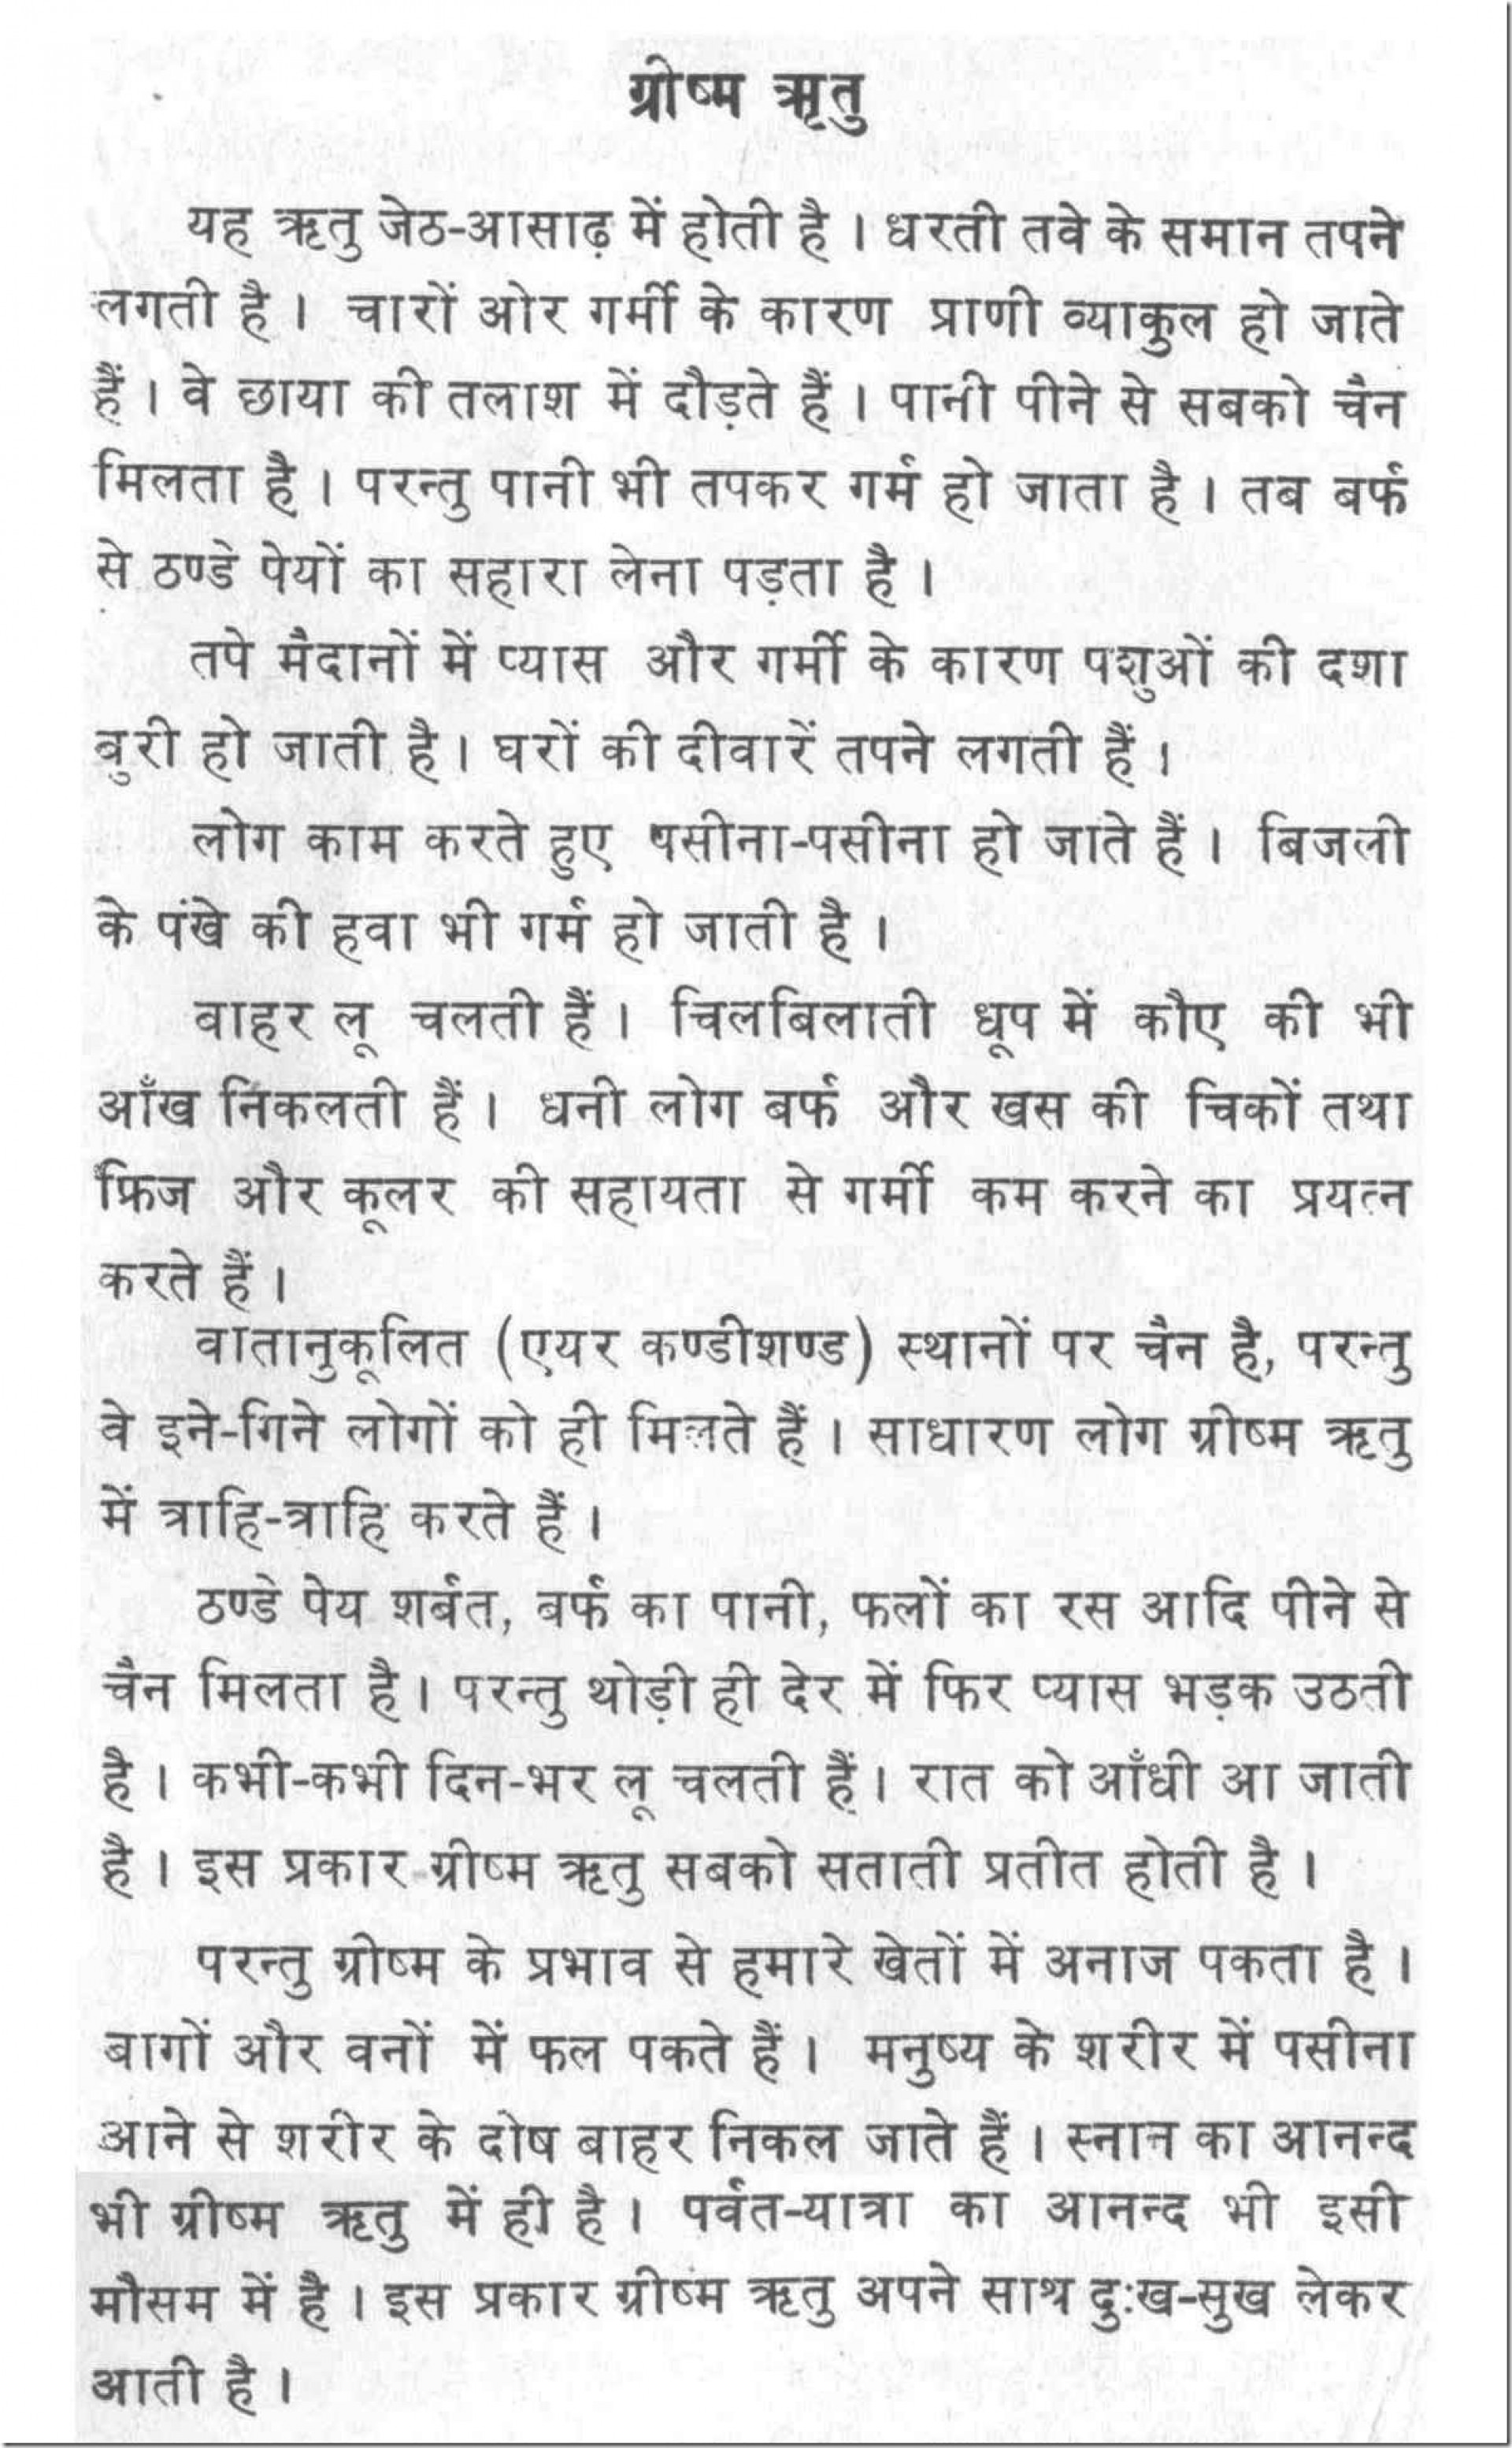 013 Summer Essay Ideas Of Season Fabulous An On Winter In Hindi Unforgettable Vacation Class 2 Urdu Conclusion 1920